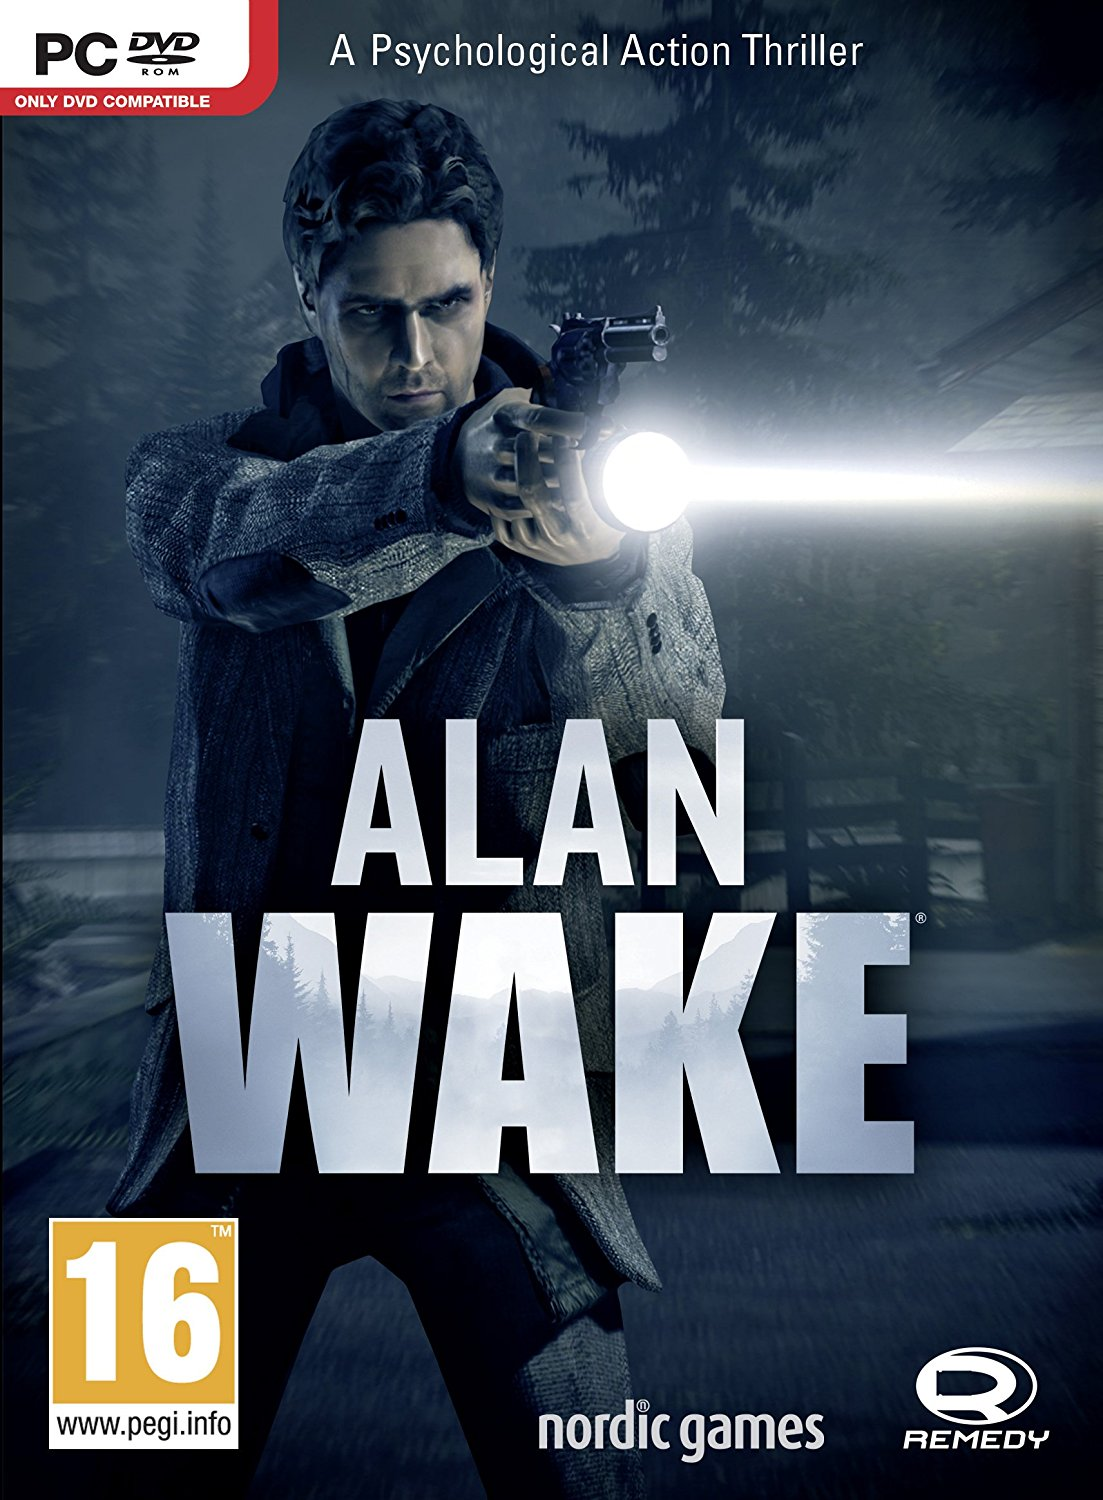 Alan Wake PC Game Free Download Full Version- GOG